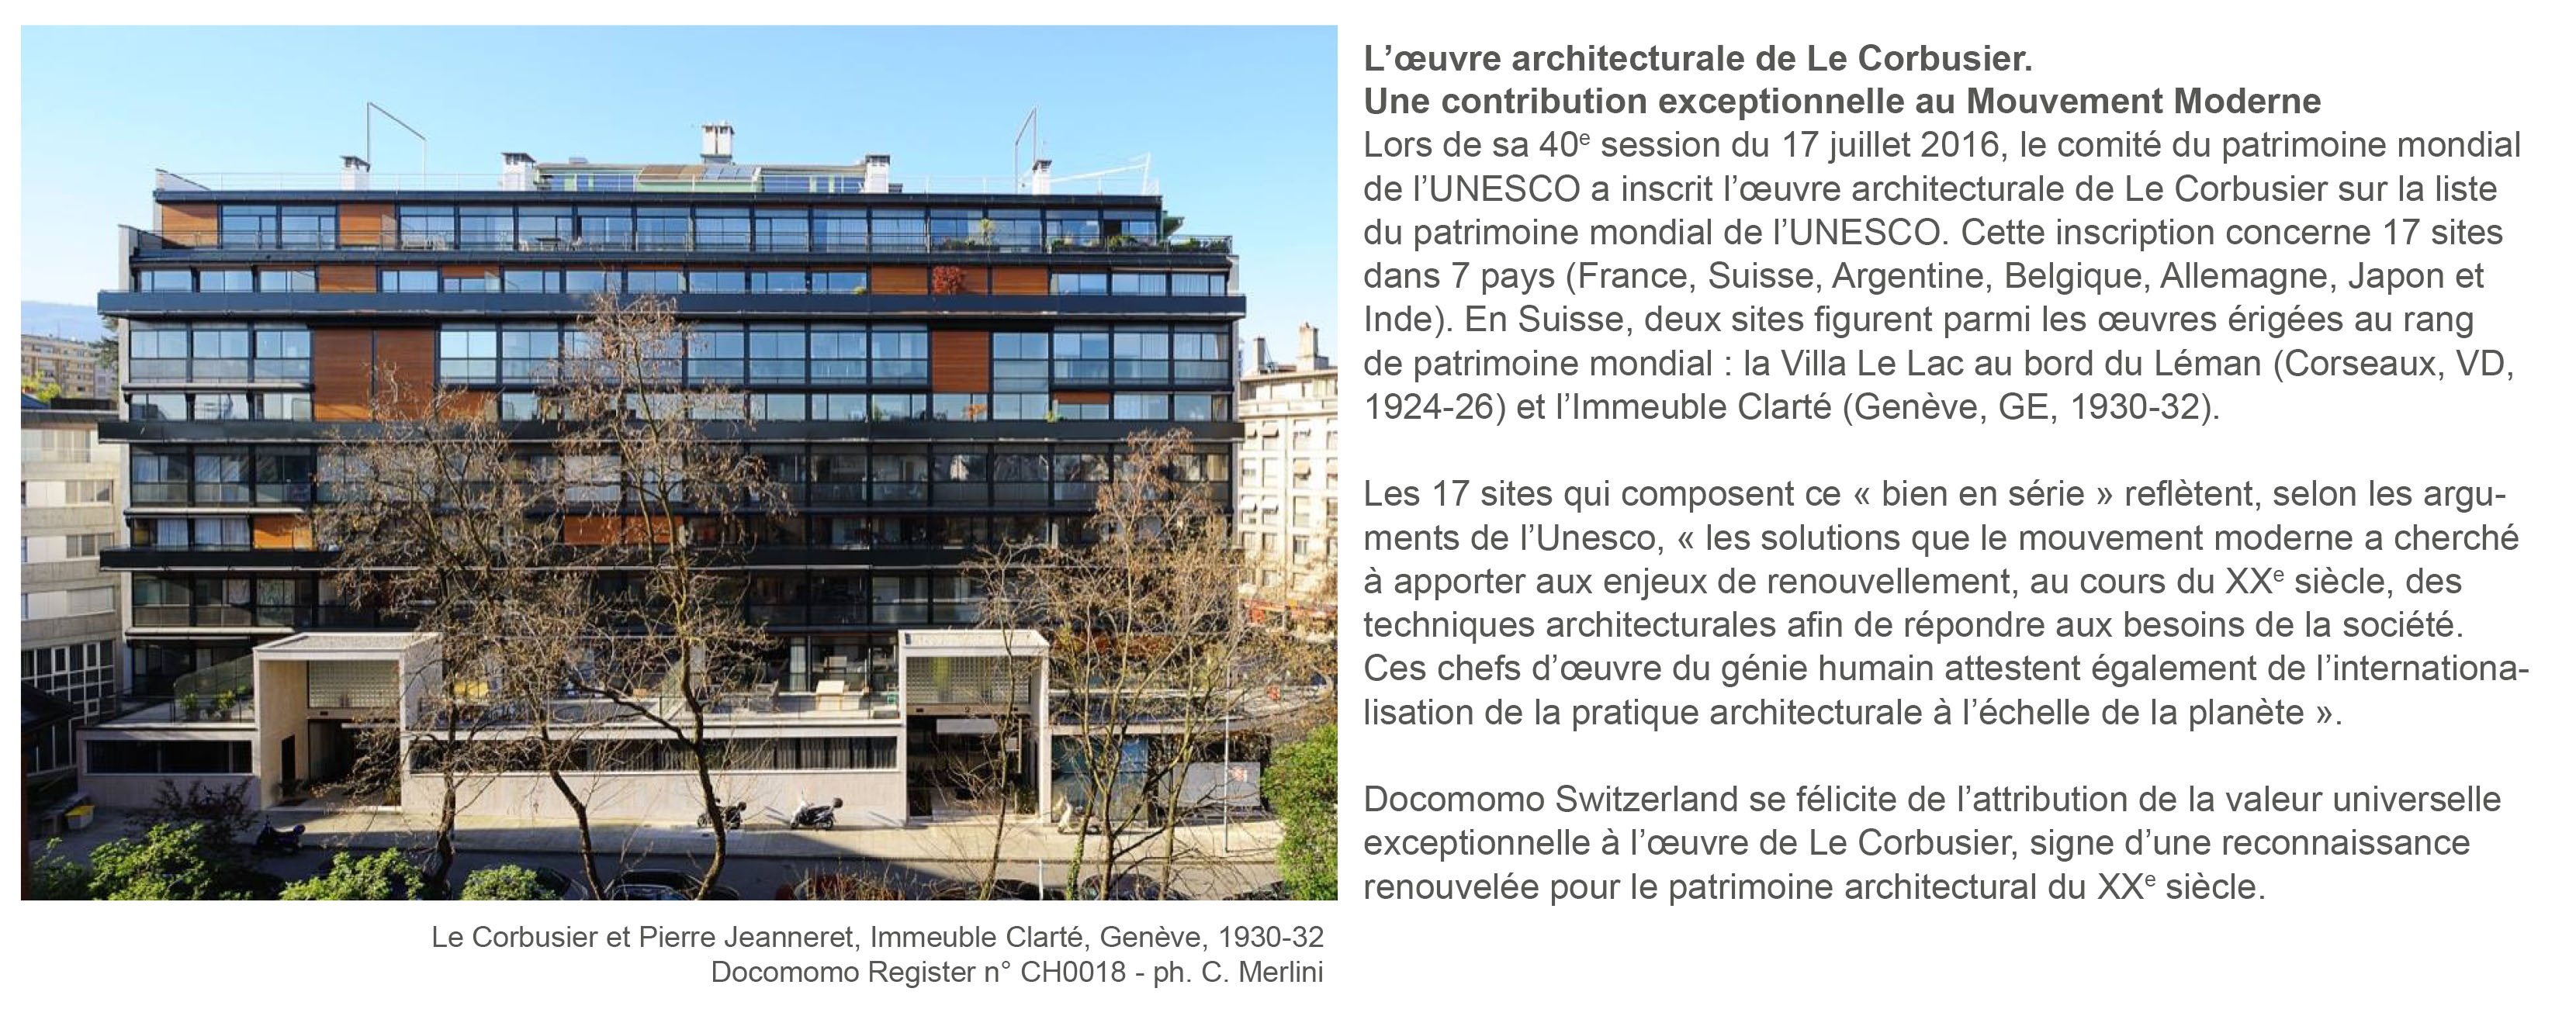 docomomo switzerland classement Unesco Le Corbusier